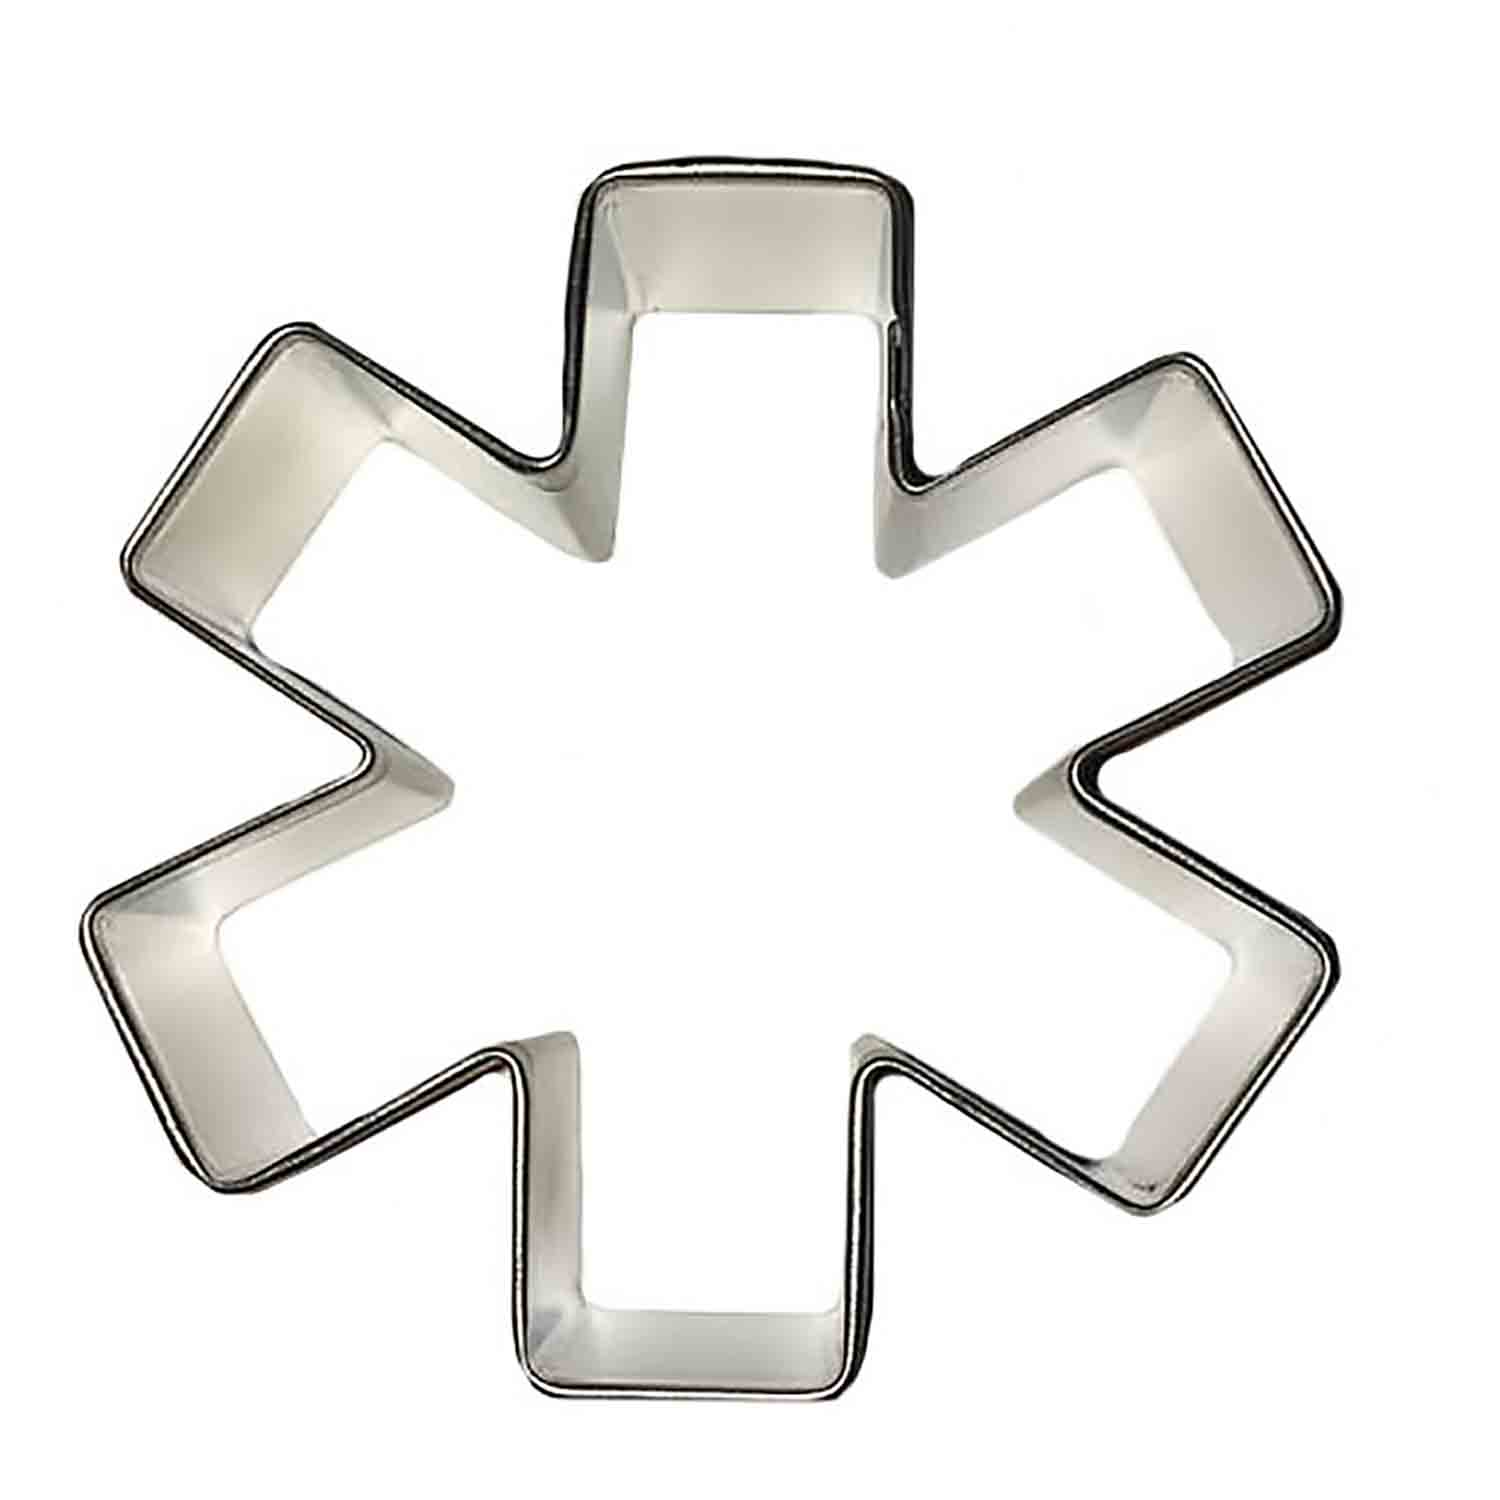 Asterisk/ Medical Symbol Cookie Cutter